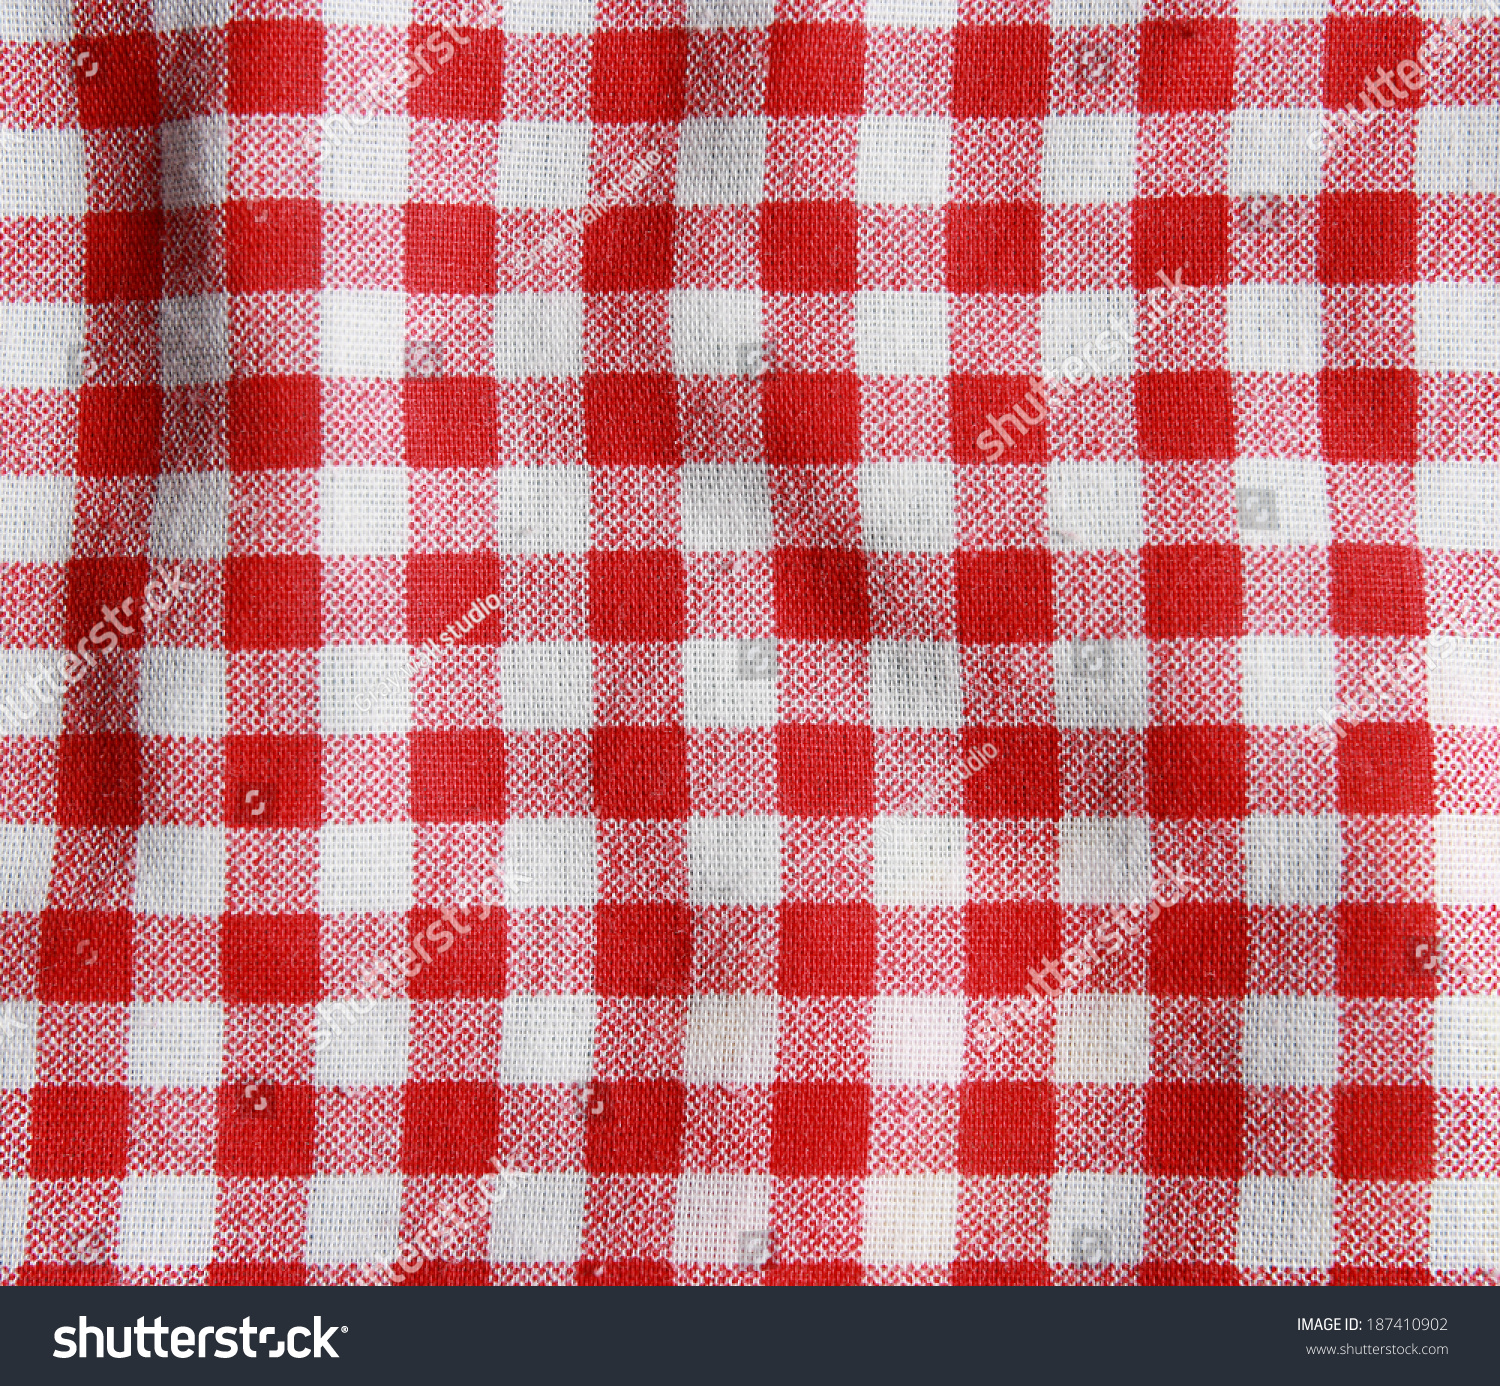 Texture Red White Checkered Picnic Blanket Stock Photo Edit Now